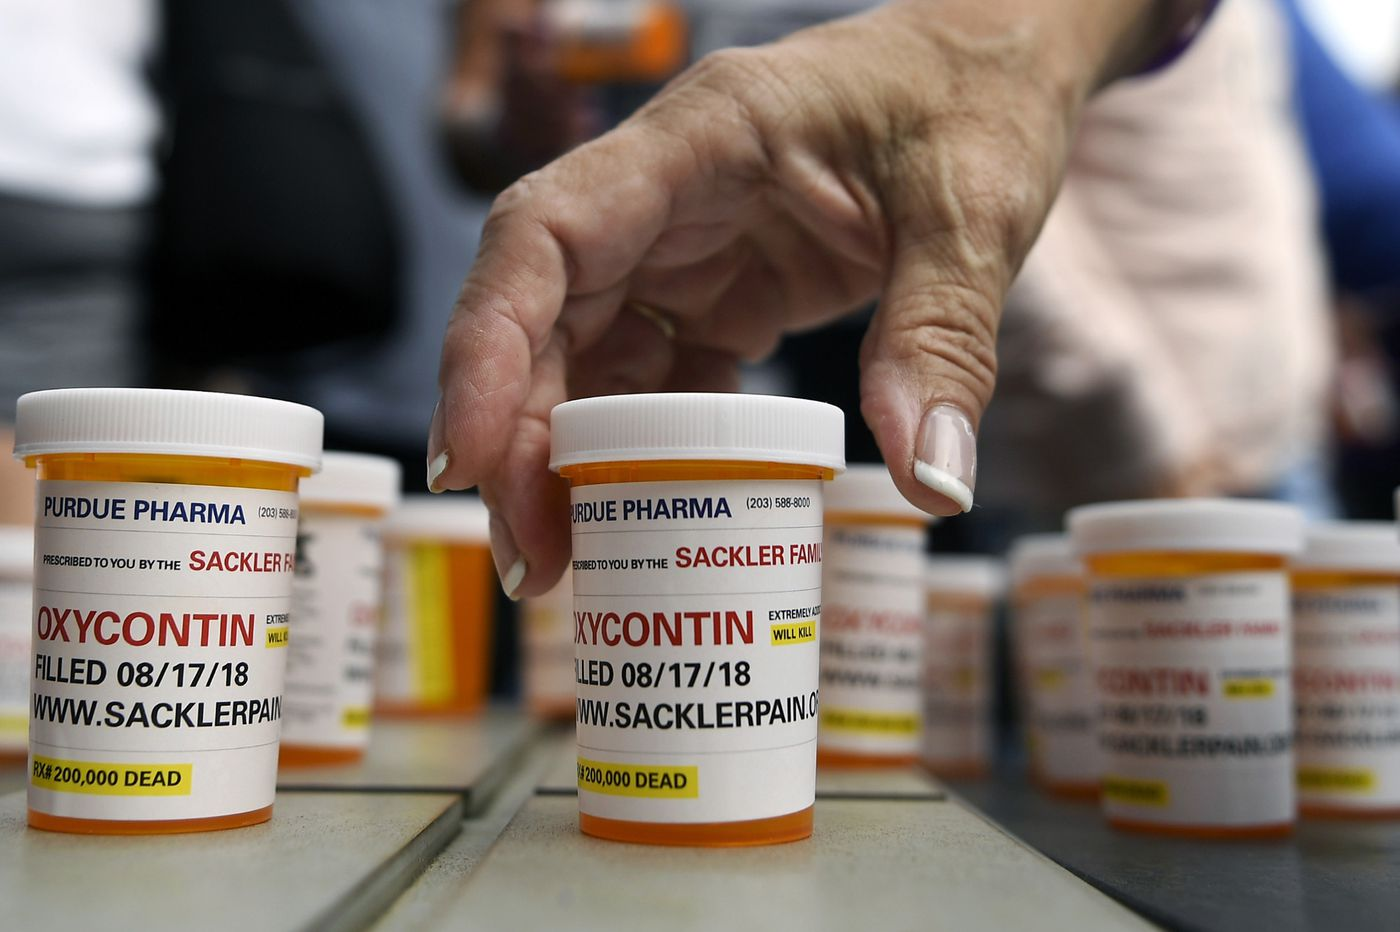 Forcing treatment and tying the hands of physicians won't solve the opioid crisis | Editorial